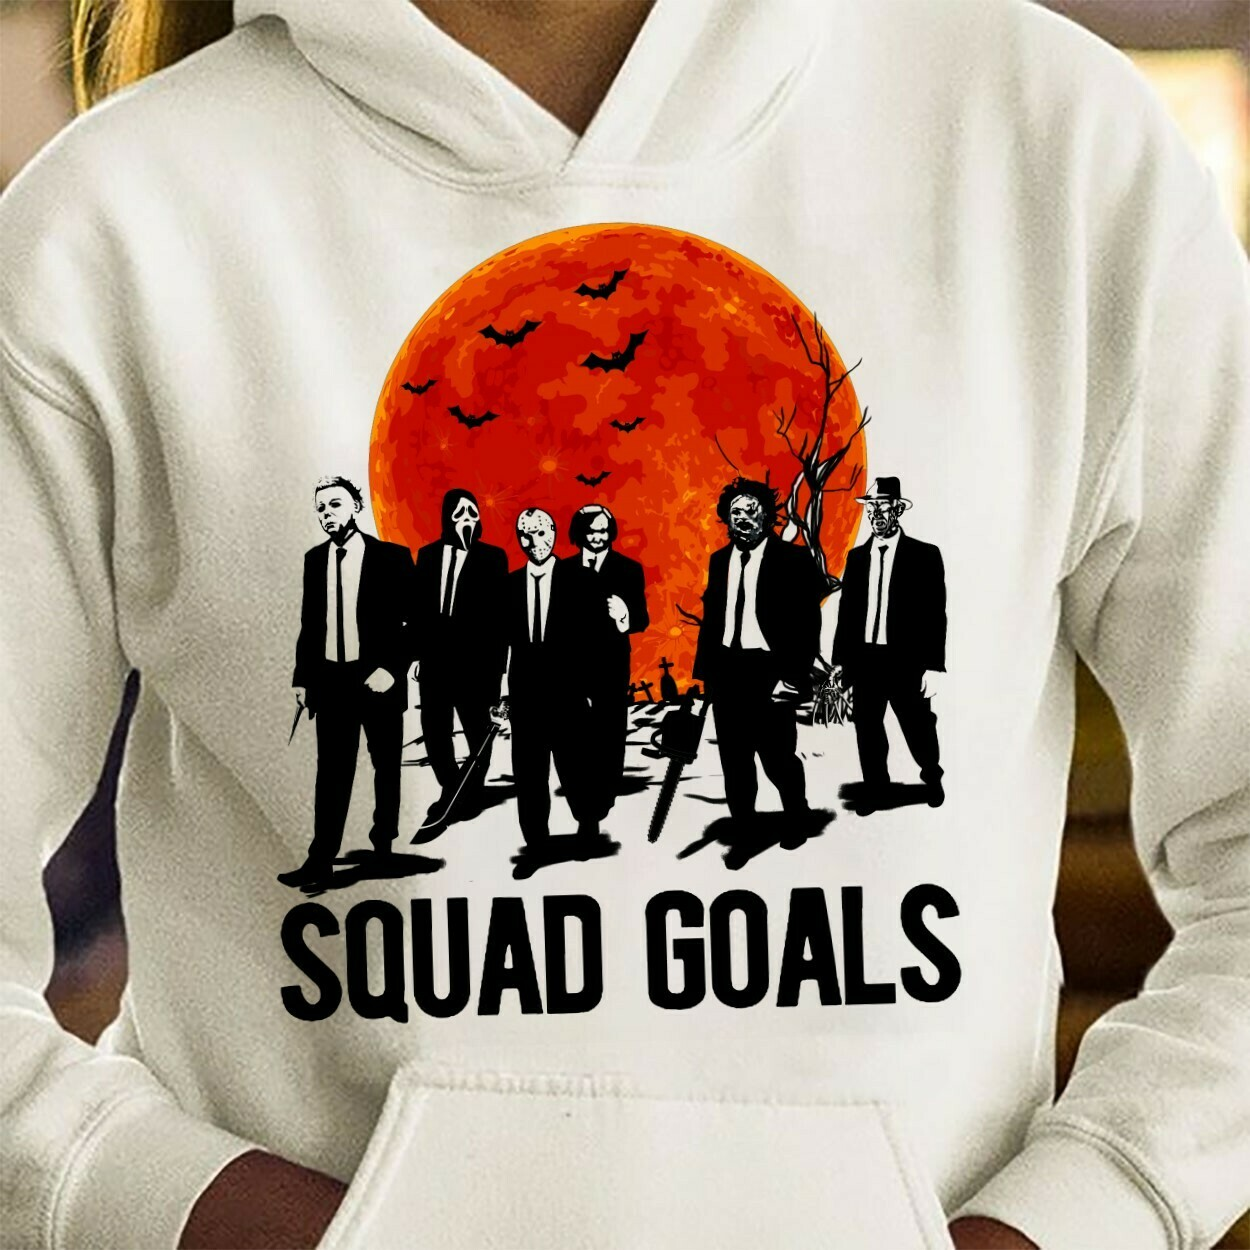 Halloween Horror Character Squad Goals Texas Chainsaw Massacre Friday The 13th Villains Halloween Horror Movie Mashup Squad T-Shirt Long Sleeve Sweatshirt Hoodie Jolly Family Gifts